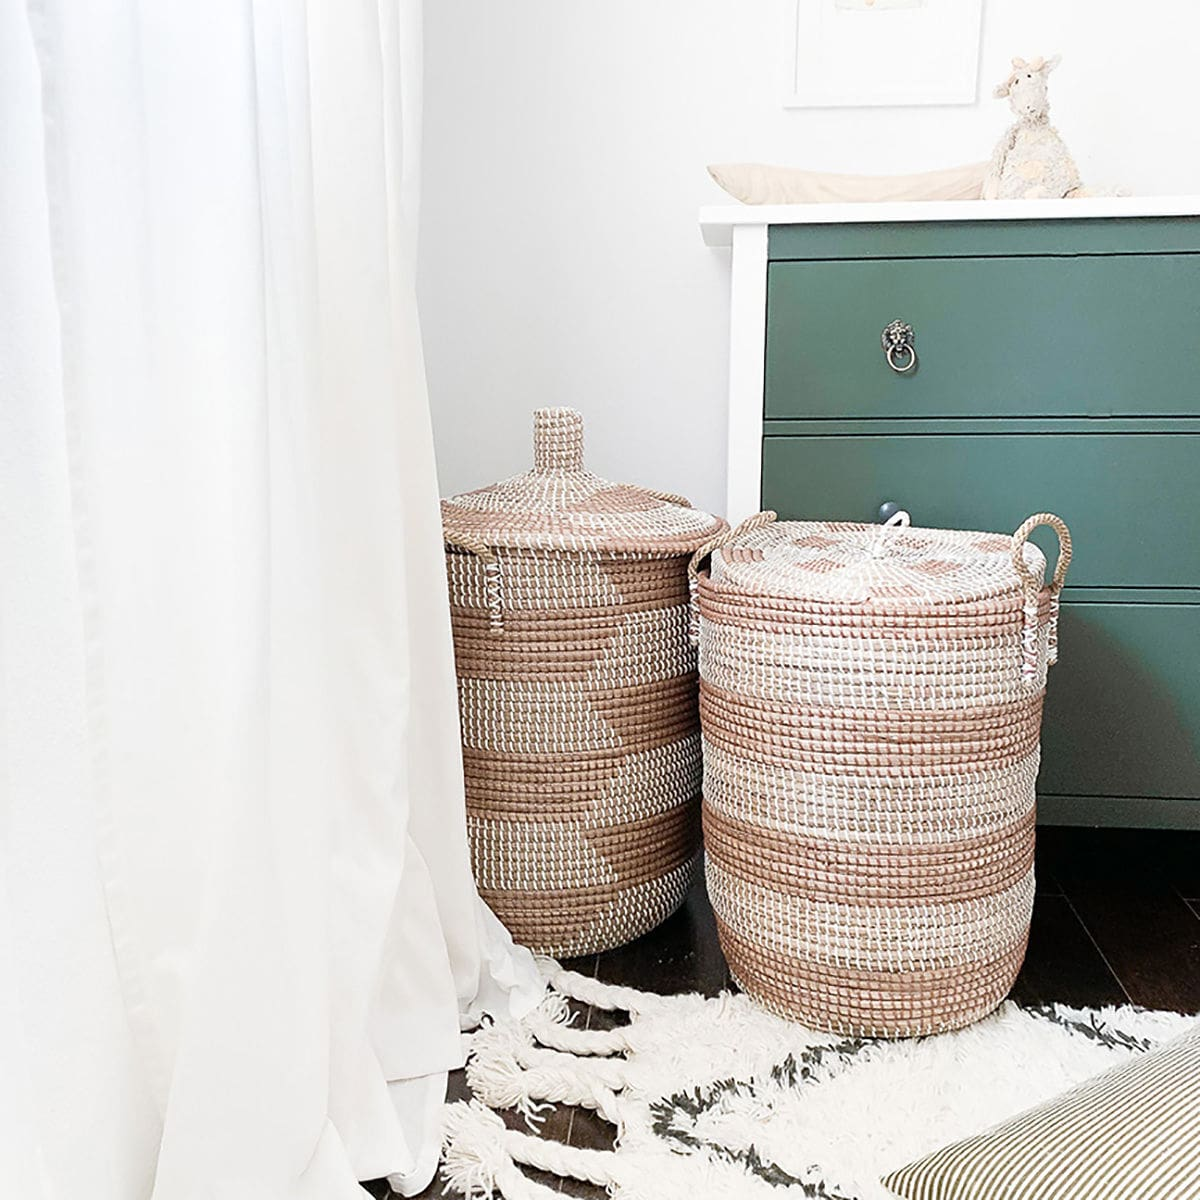 baby nursery with hampers, soft curtains, drawers and rug